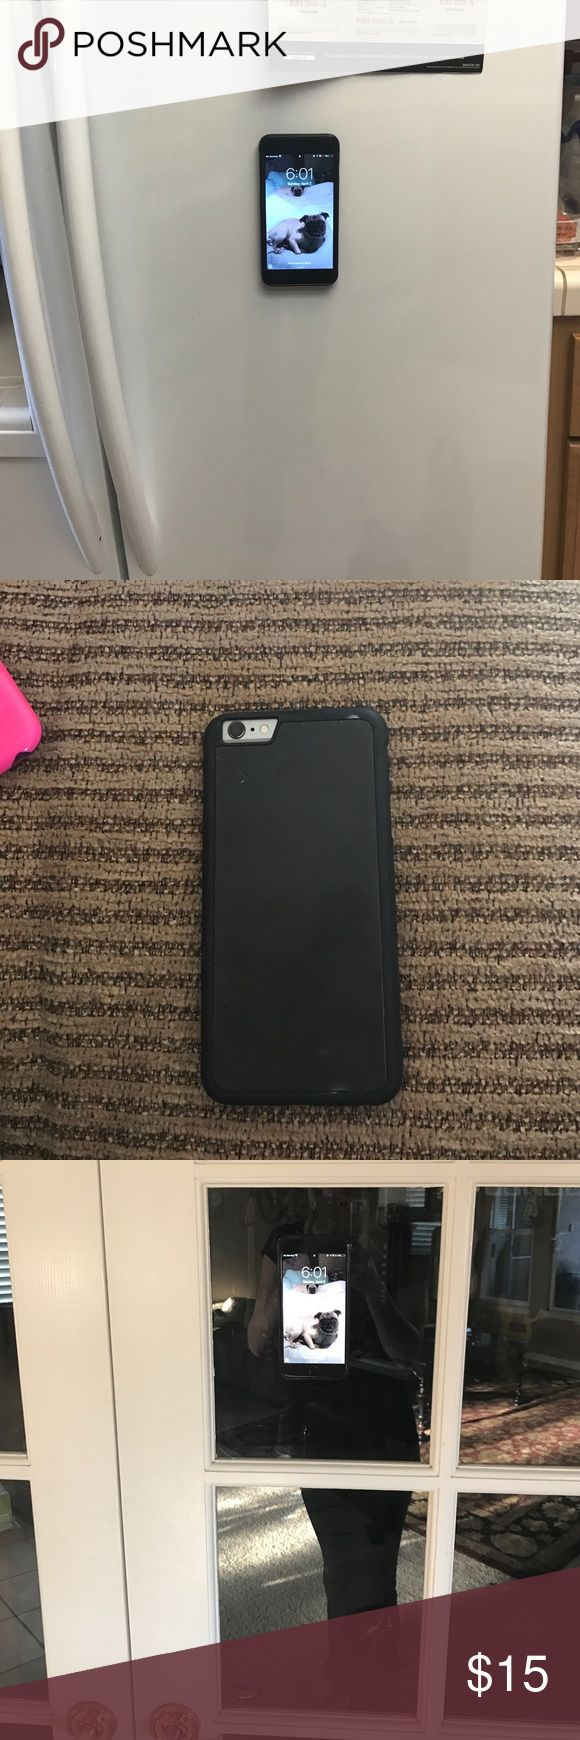 Anti gravity iPhone 6/6s plus case iPhone 6/6s plus case! Sticks to most smooth, flat surfaces (kitchen cabinets, glass, white boards, metal, computer screens, mirrors, tile) washable with water and a lint free towel Accessories Phone Cases